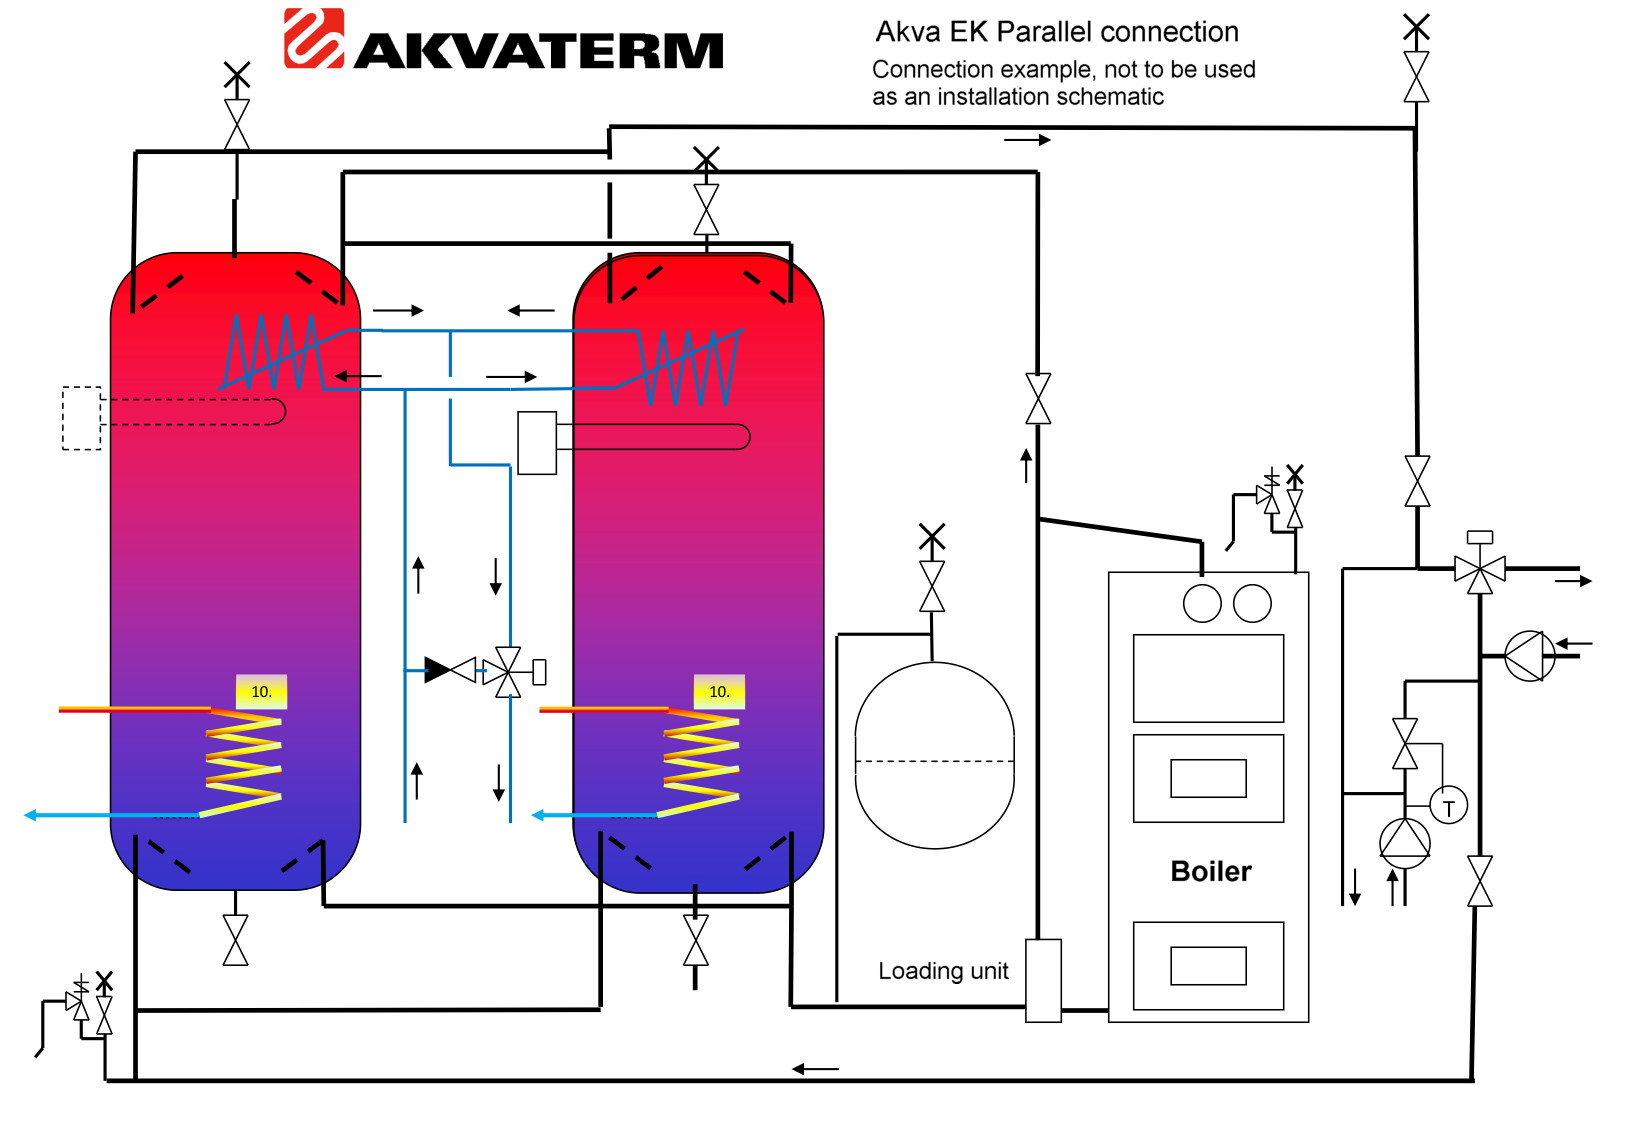 akva ek accumulators are ideal for use in systems with oil/gas, wood and  pellet boilers  the optional electric immersion heaters can provide heating  back-up